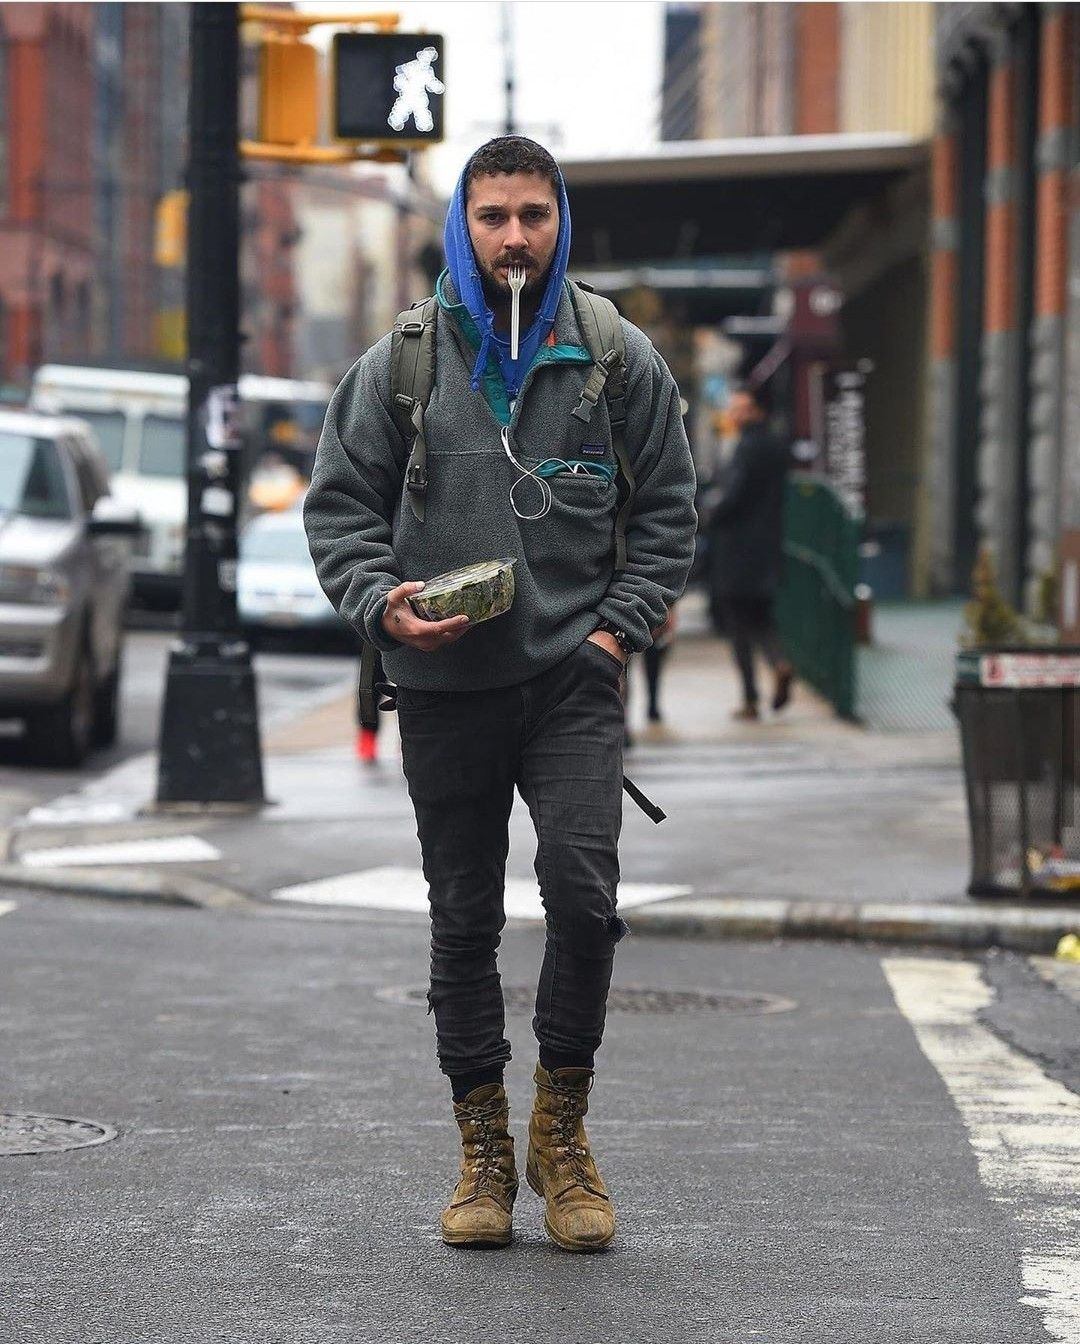 Pin by KAUTHAR PETERSEN on Shai labeouf in 2020 Mens